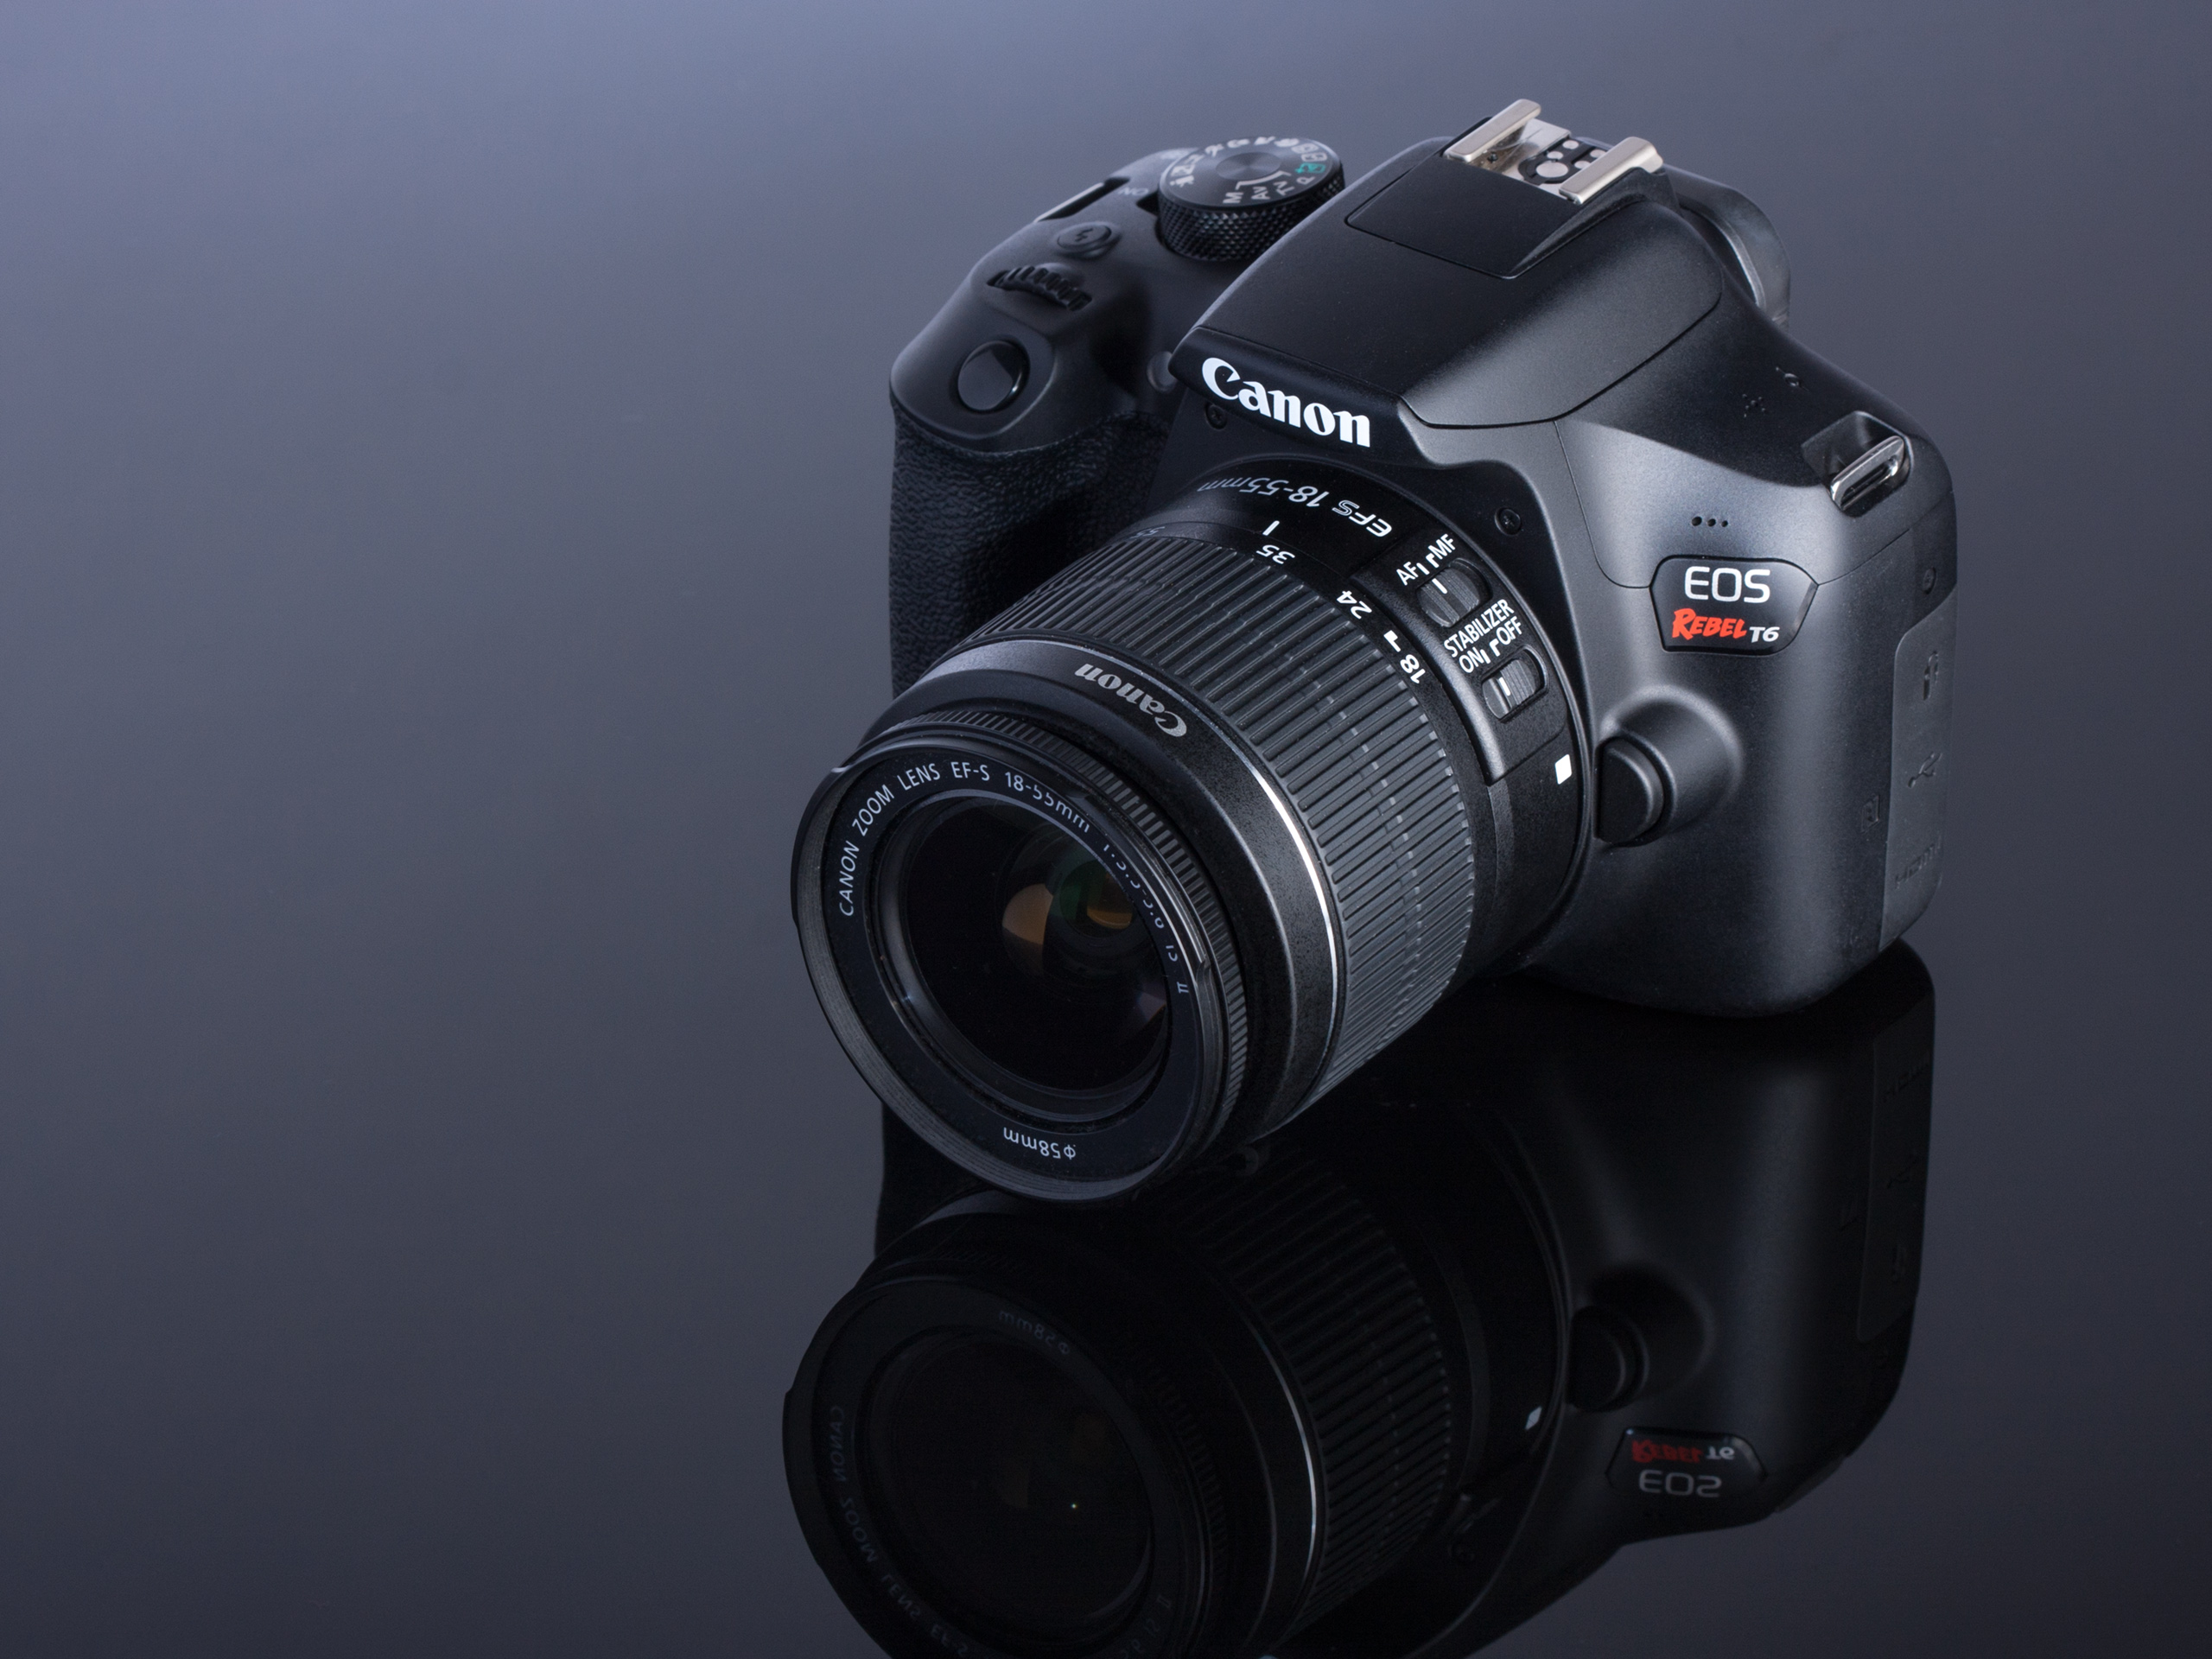 The price is right: Canon EOS Rebel T6 / 1300D Review: Digital ...